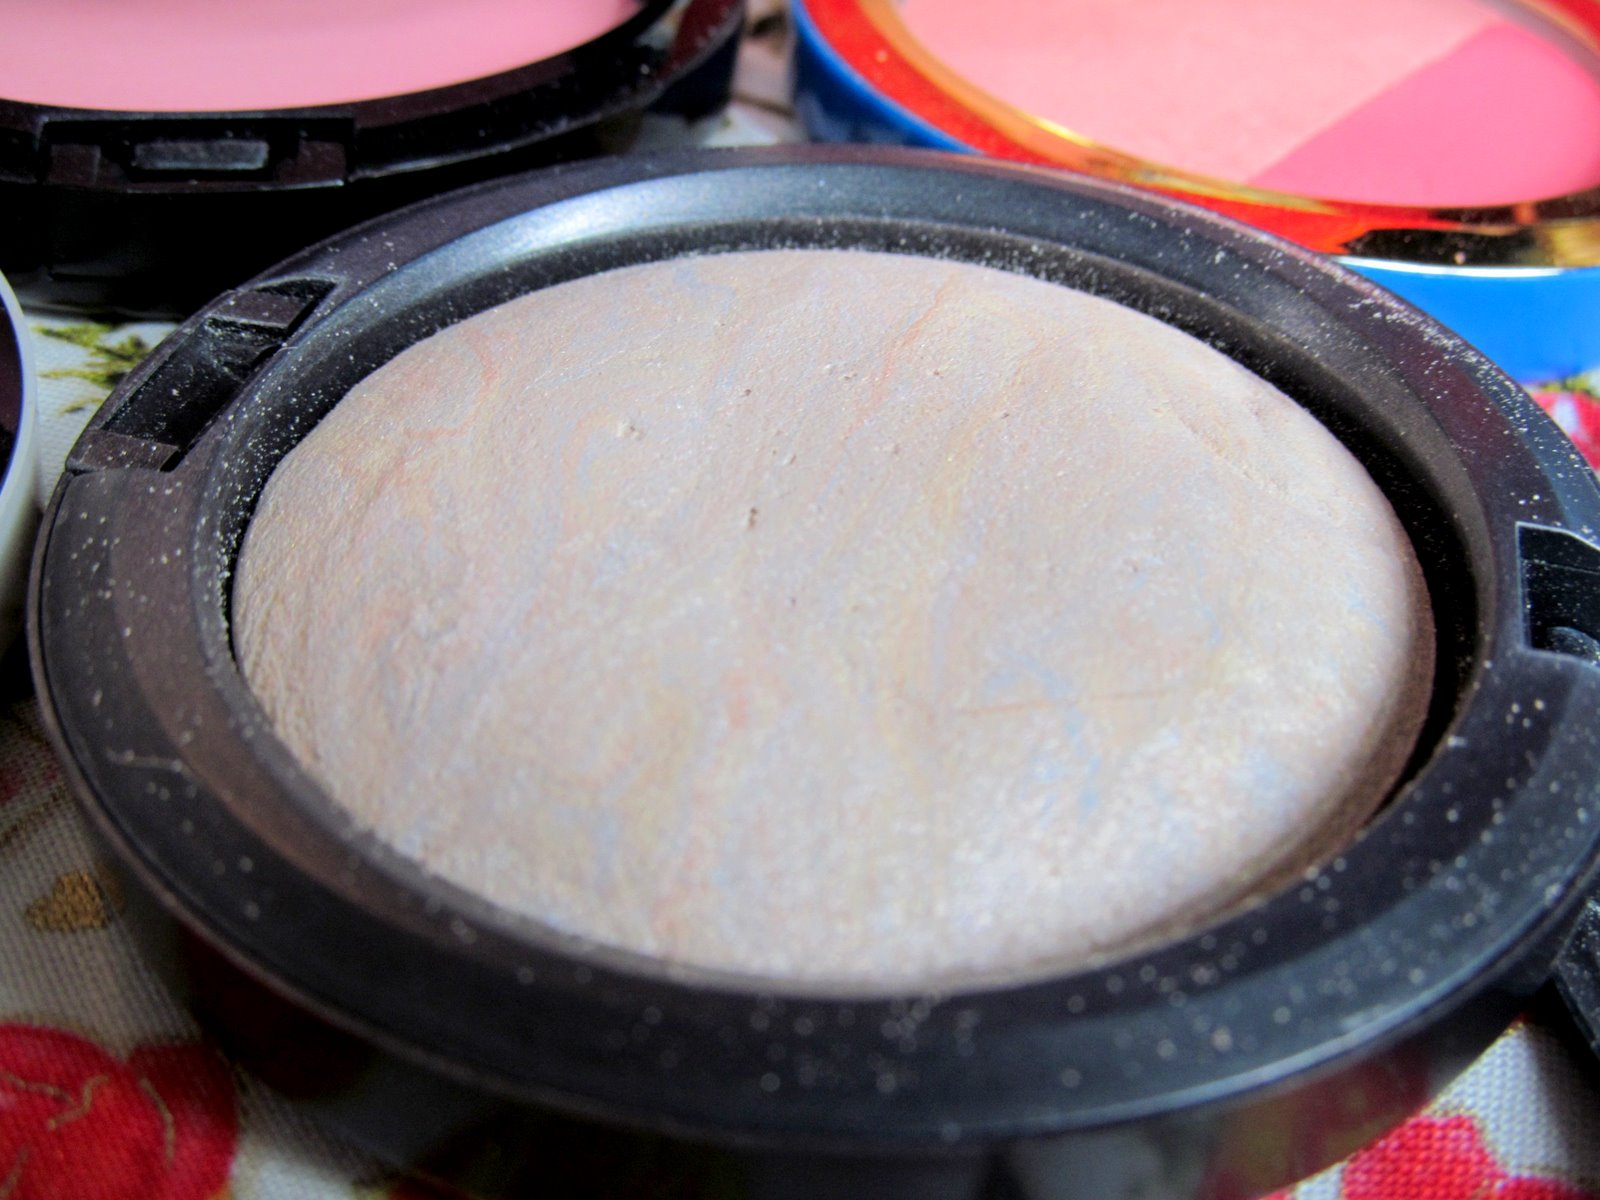 MAC Lightscapade Mineralize Skin Finish